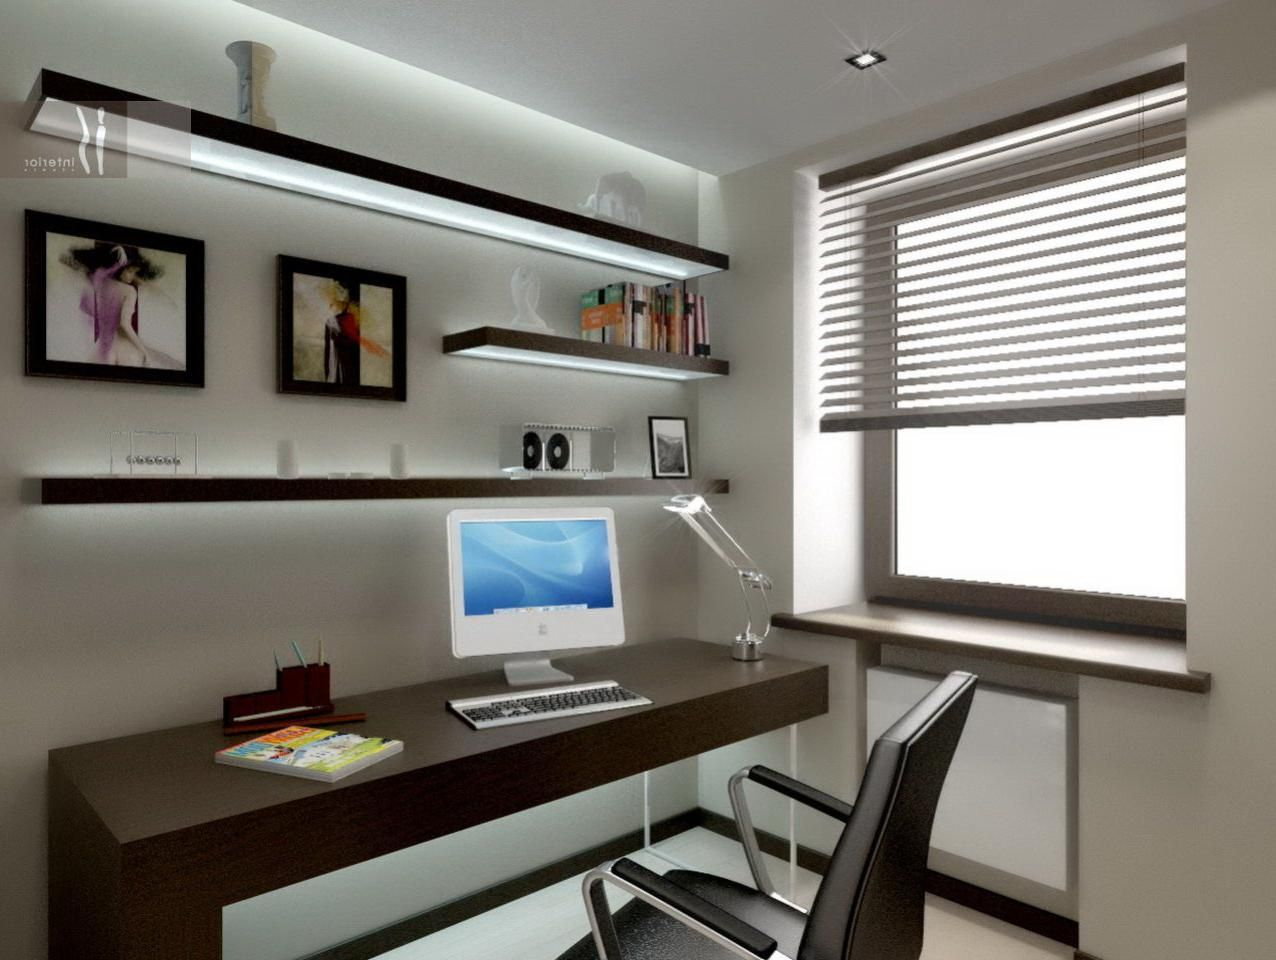 Home Office Ideas Working From Home With Your Style 0 002 Regelung Bei Home O Home Office Layouts Home Office Design Modern Home Office Desk